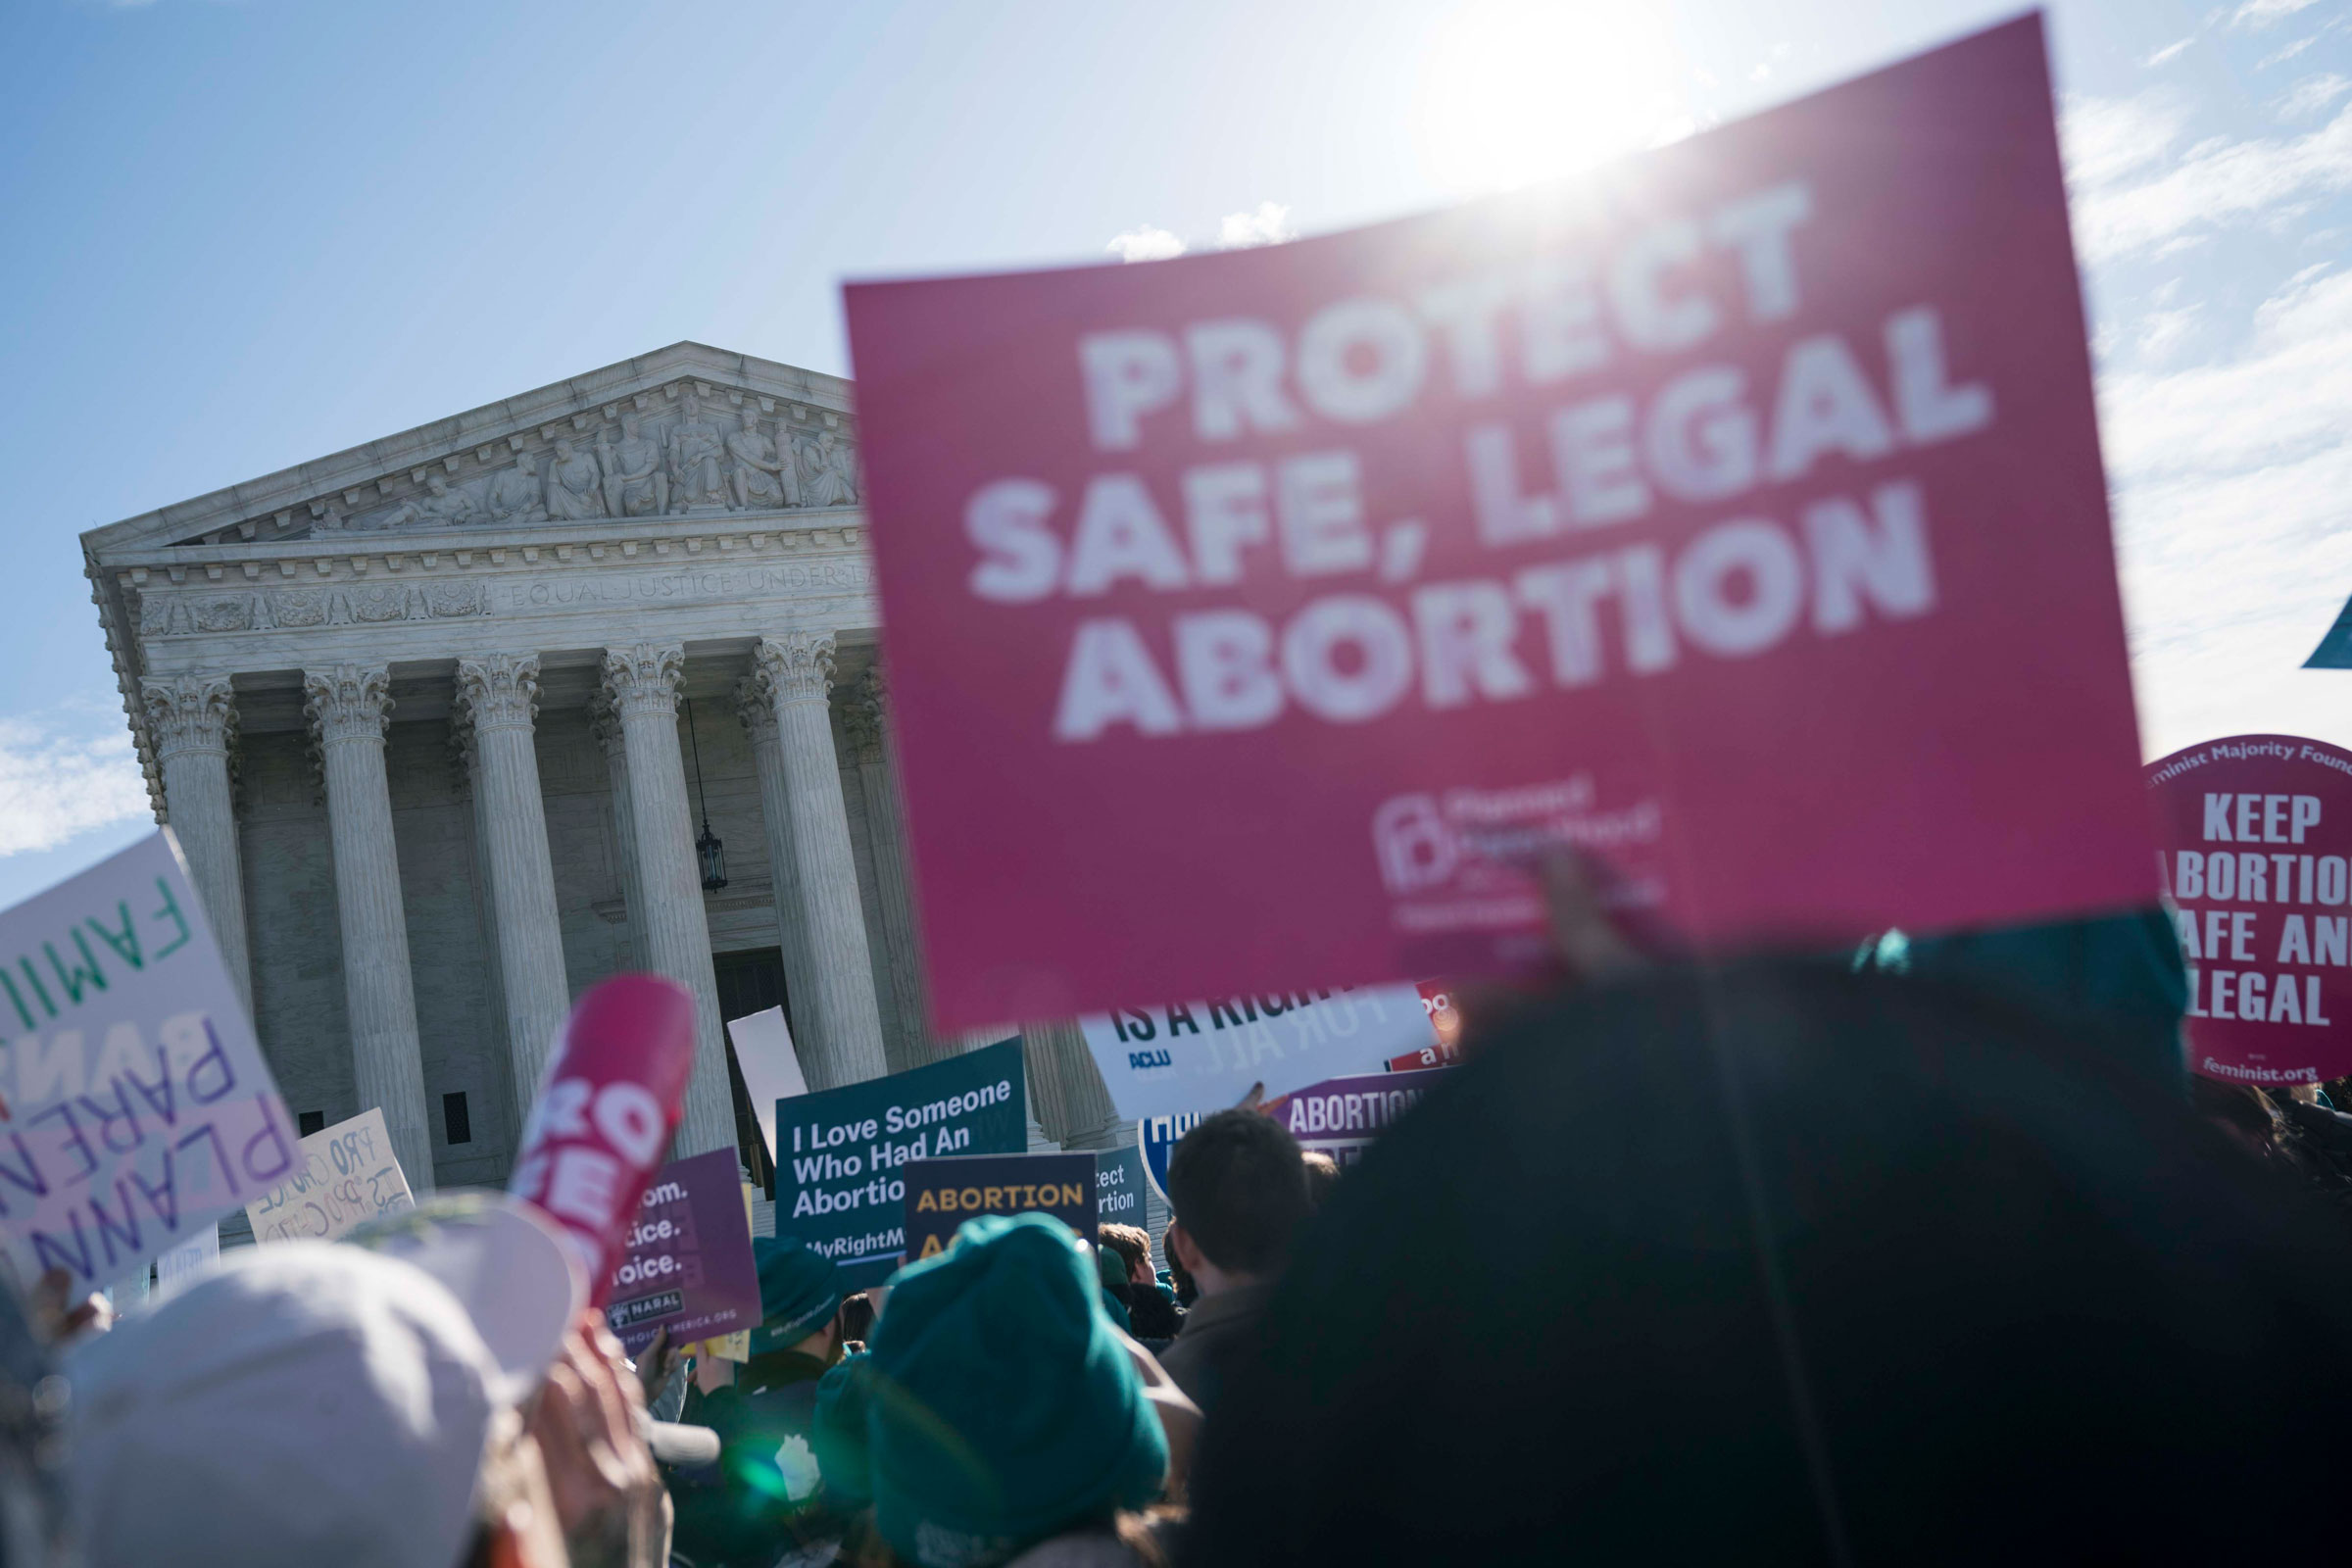 a person in front of the Supreme Court holds a pink Protect Safe, Legal Abortion sing